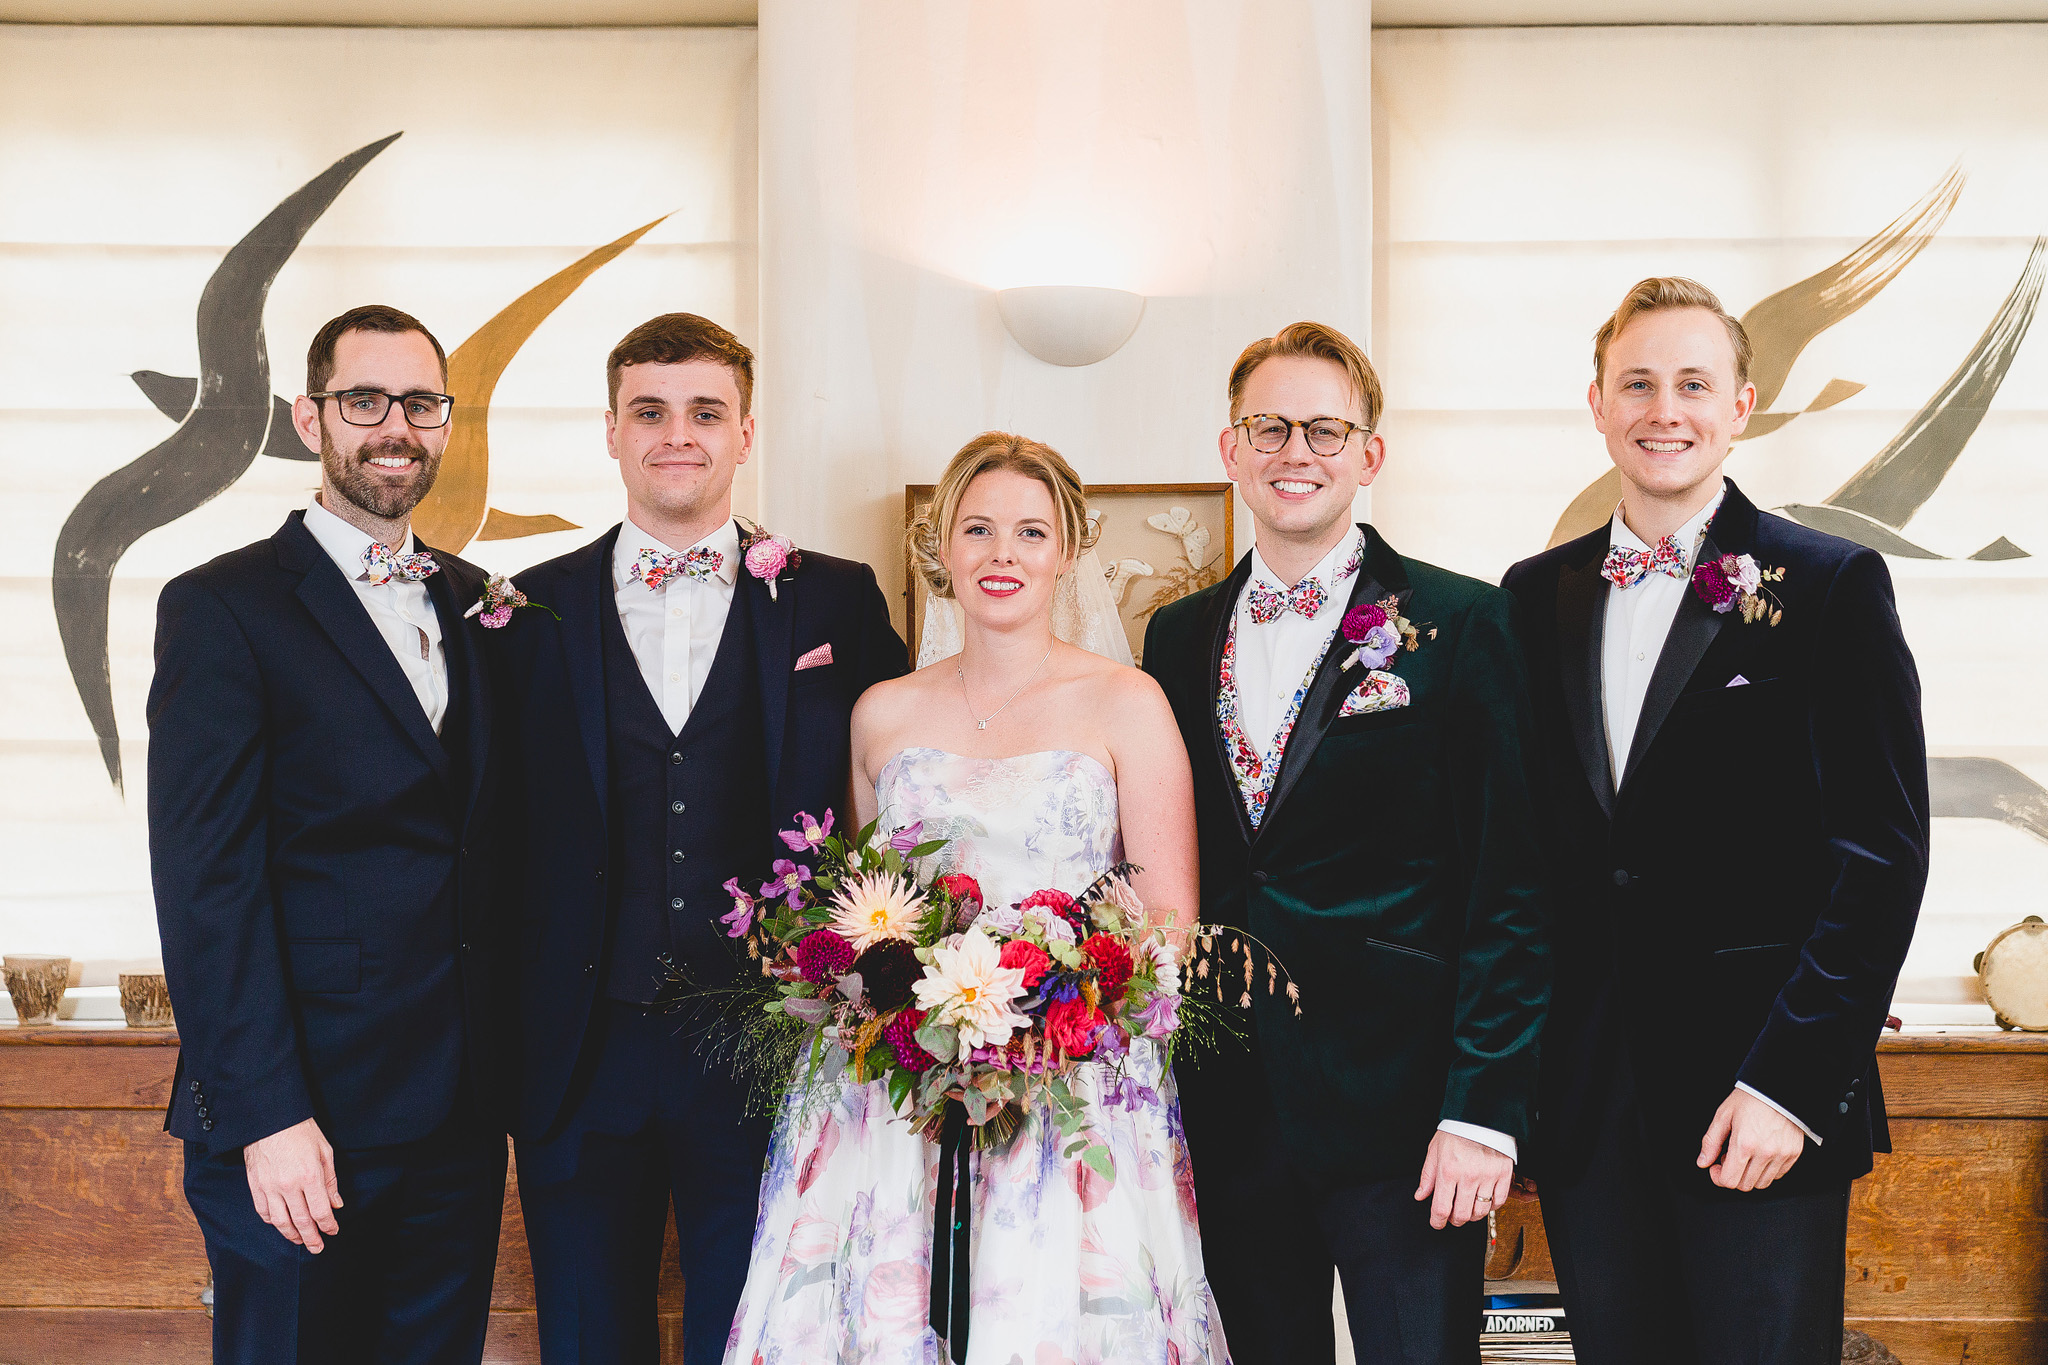 Natasha + Simon Wedding - UK - Bespoke hand painted print  photographer - James Rouse